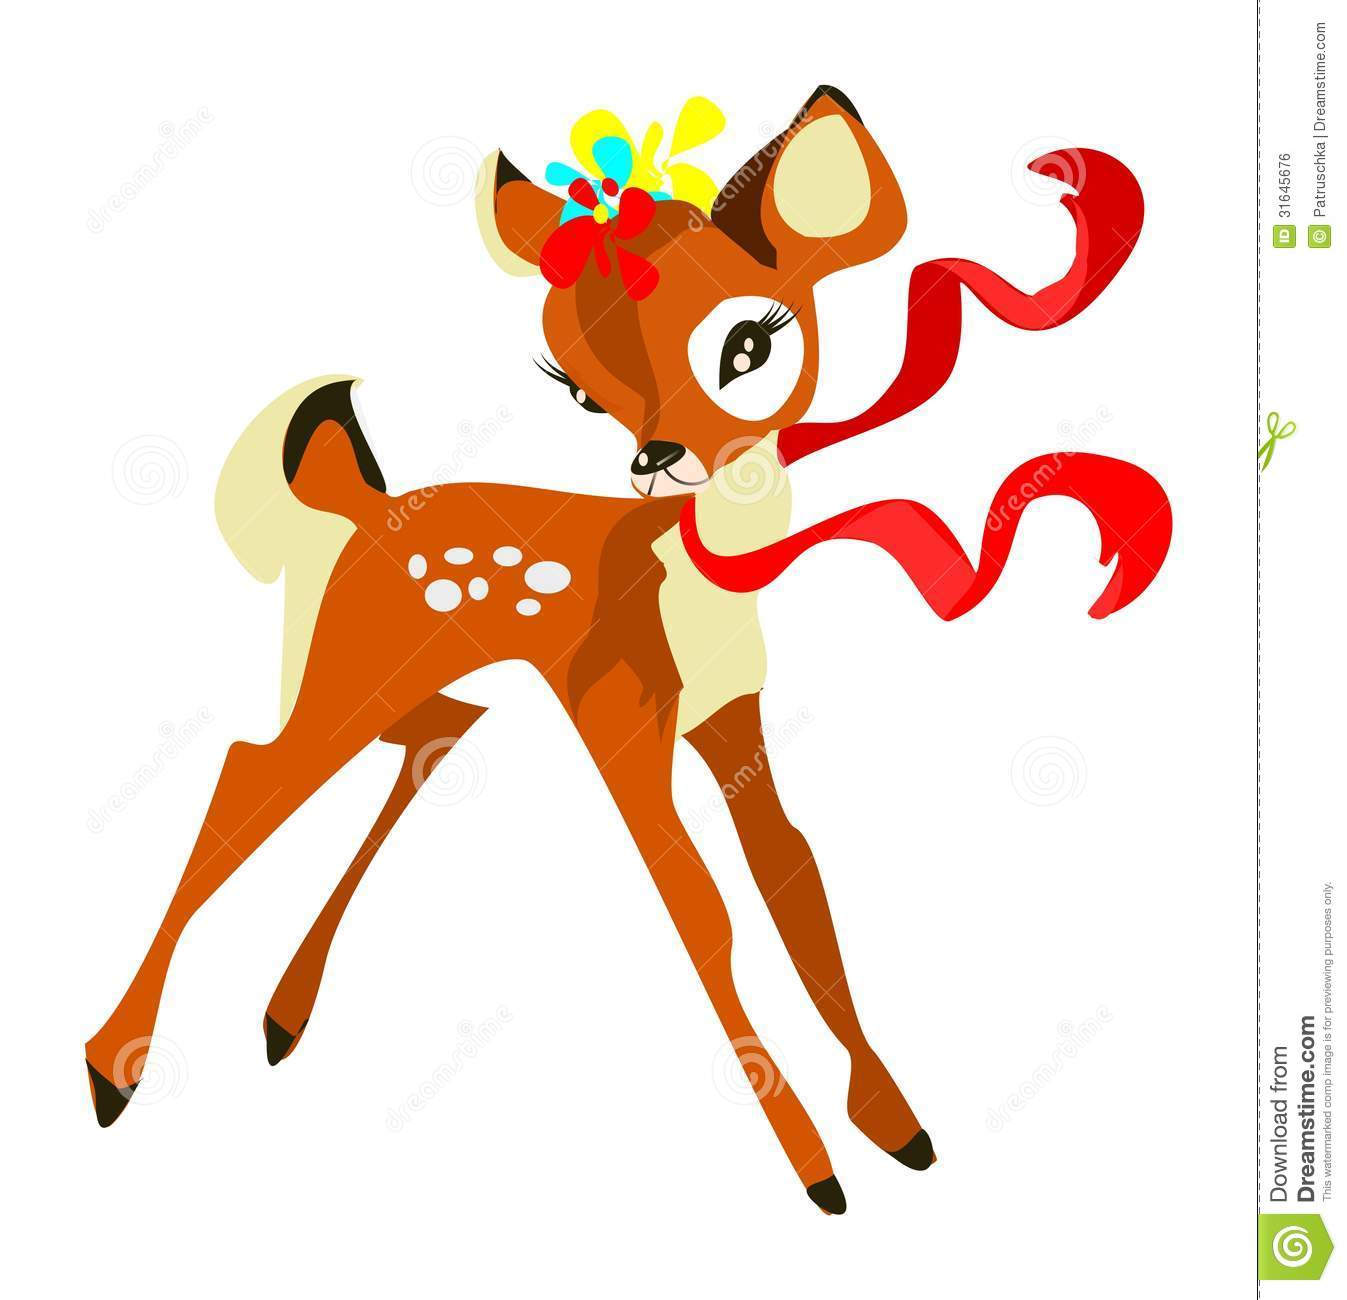 rudolph the red nosed reindeer clipart at getdrawings com free for rh getdrawings com cute baby reindeer clipart cute reindeer clipart black and white